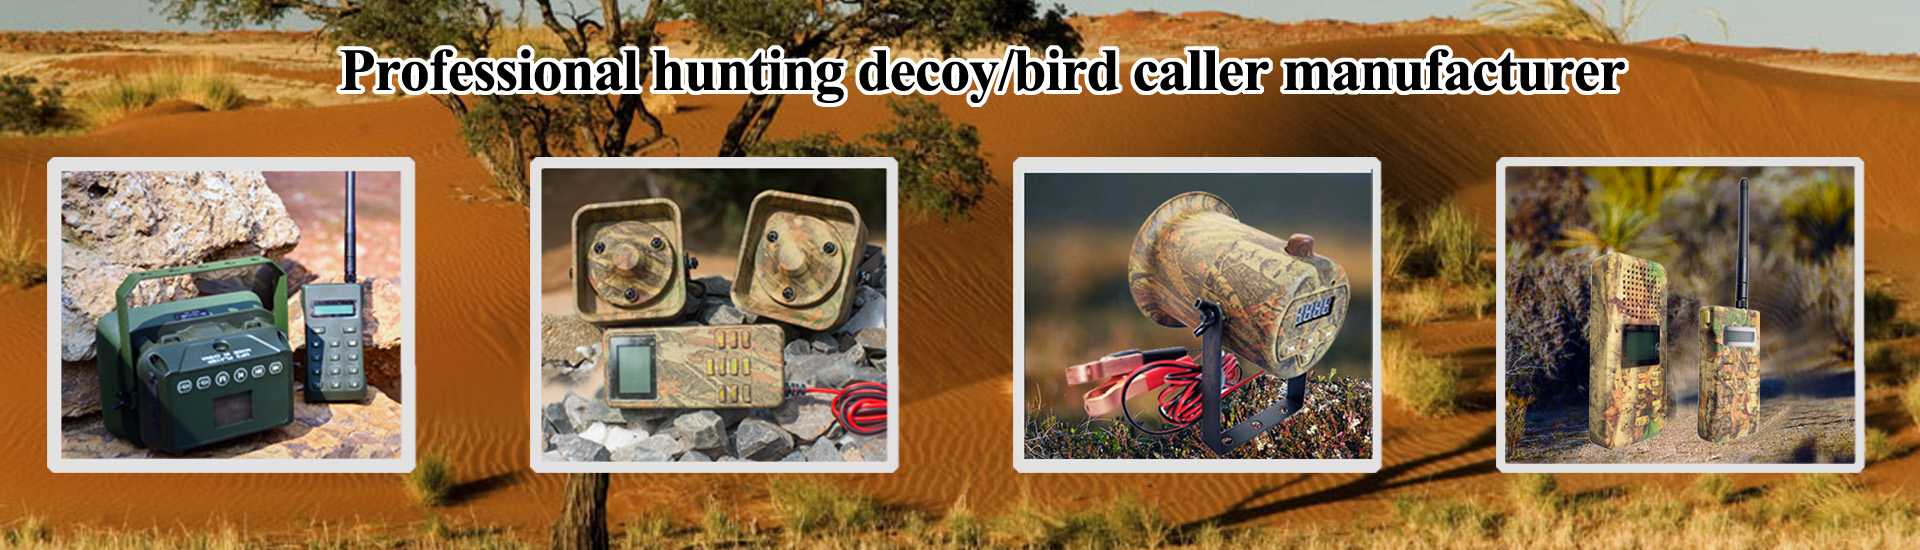 Bird caller, hunting decoy, hunting device, game calls, bird sound mp3